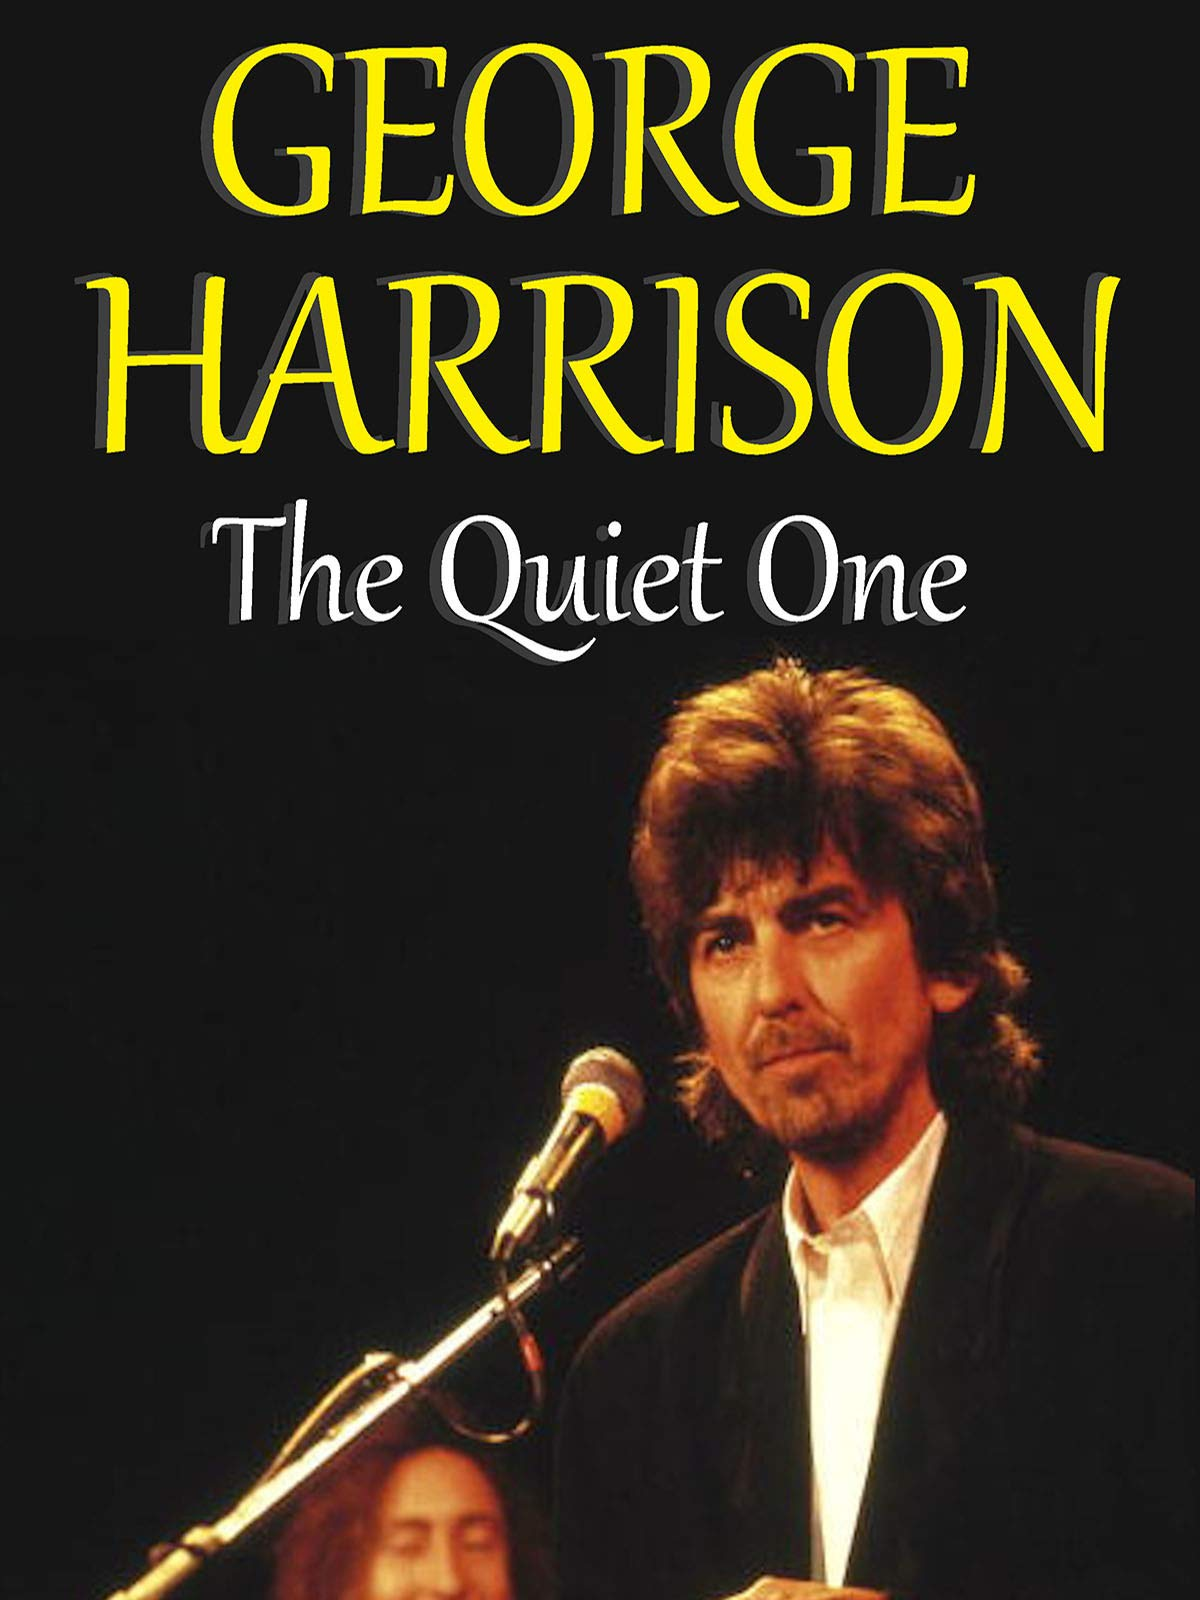 George Harrison The Quite One on Amazon Prime Video UK